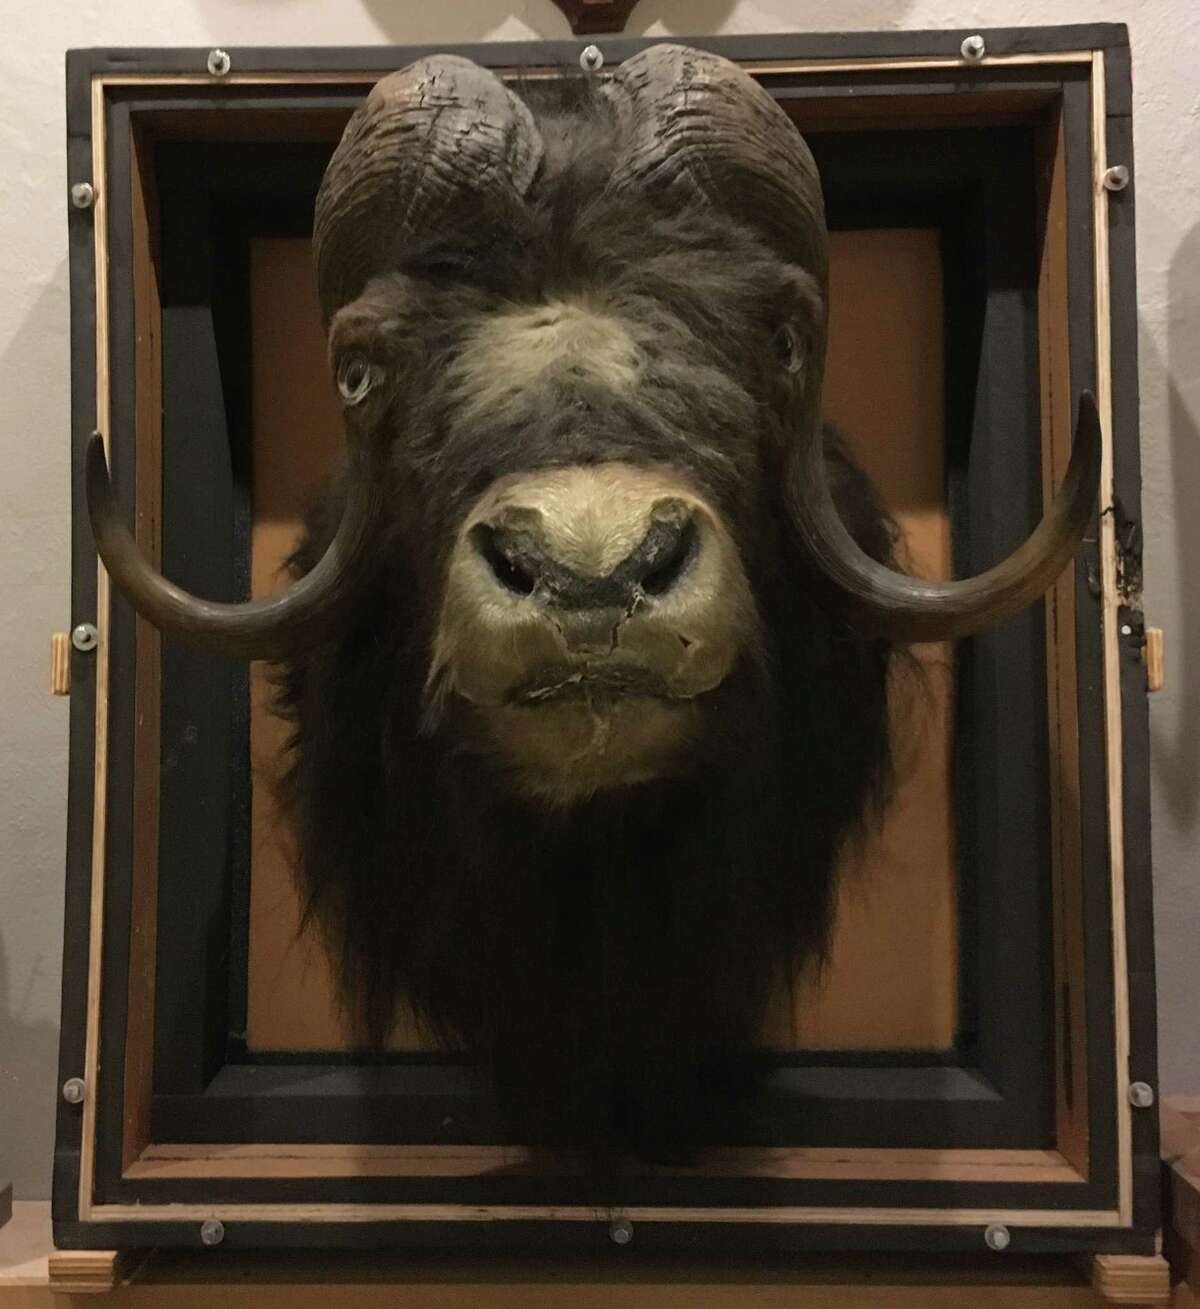 A taxidemied musk ox is among the natural-history displays at the Berkshire Museum. (Steve Barnes/Times Union)